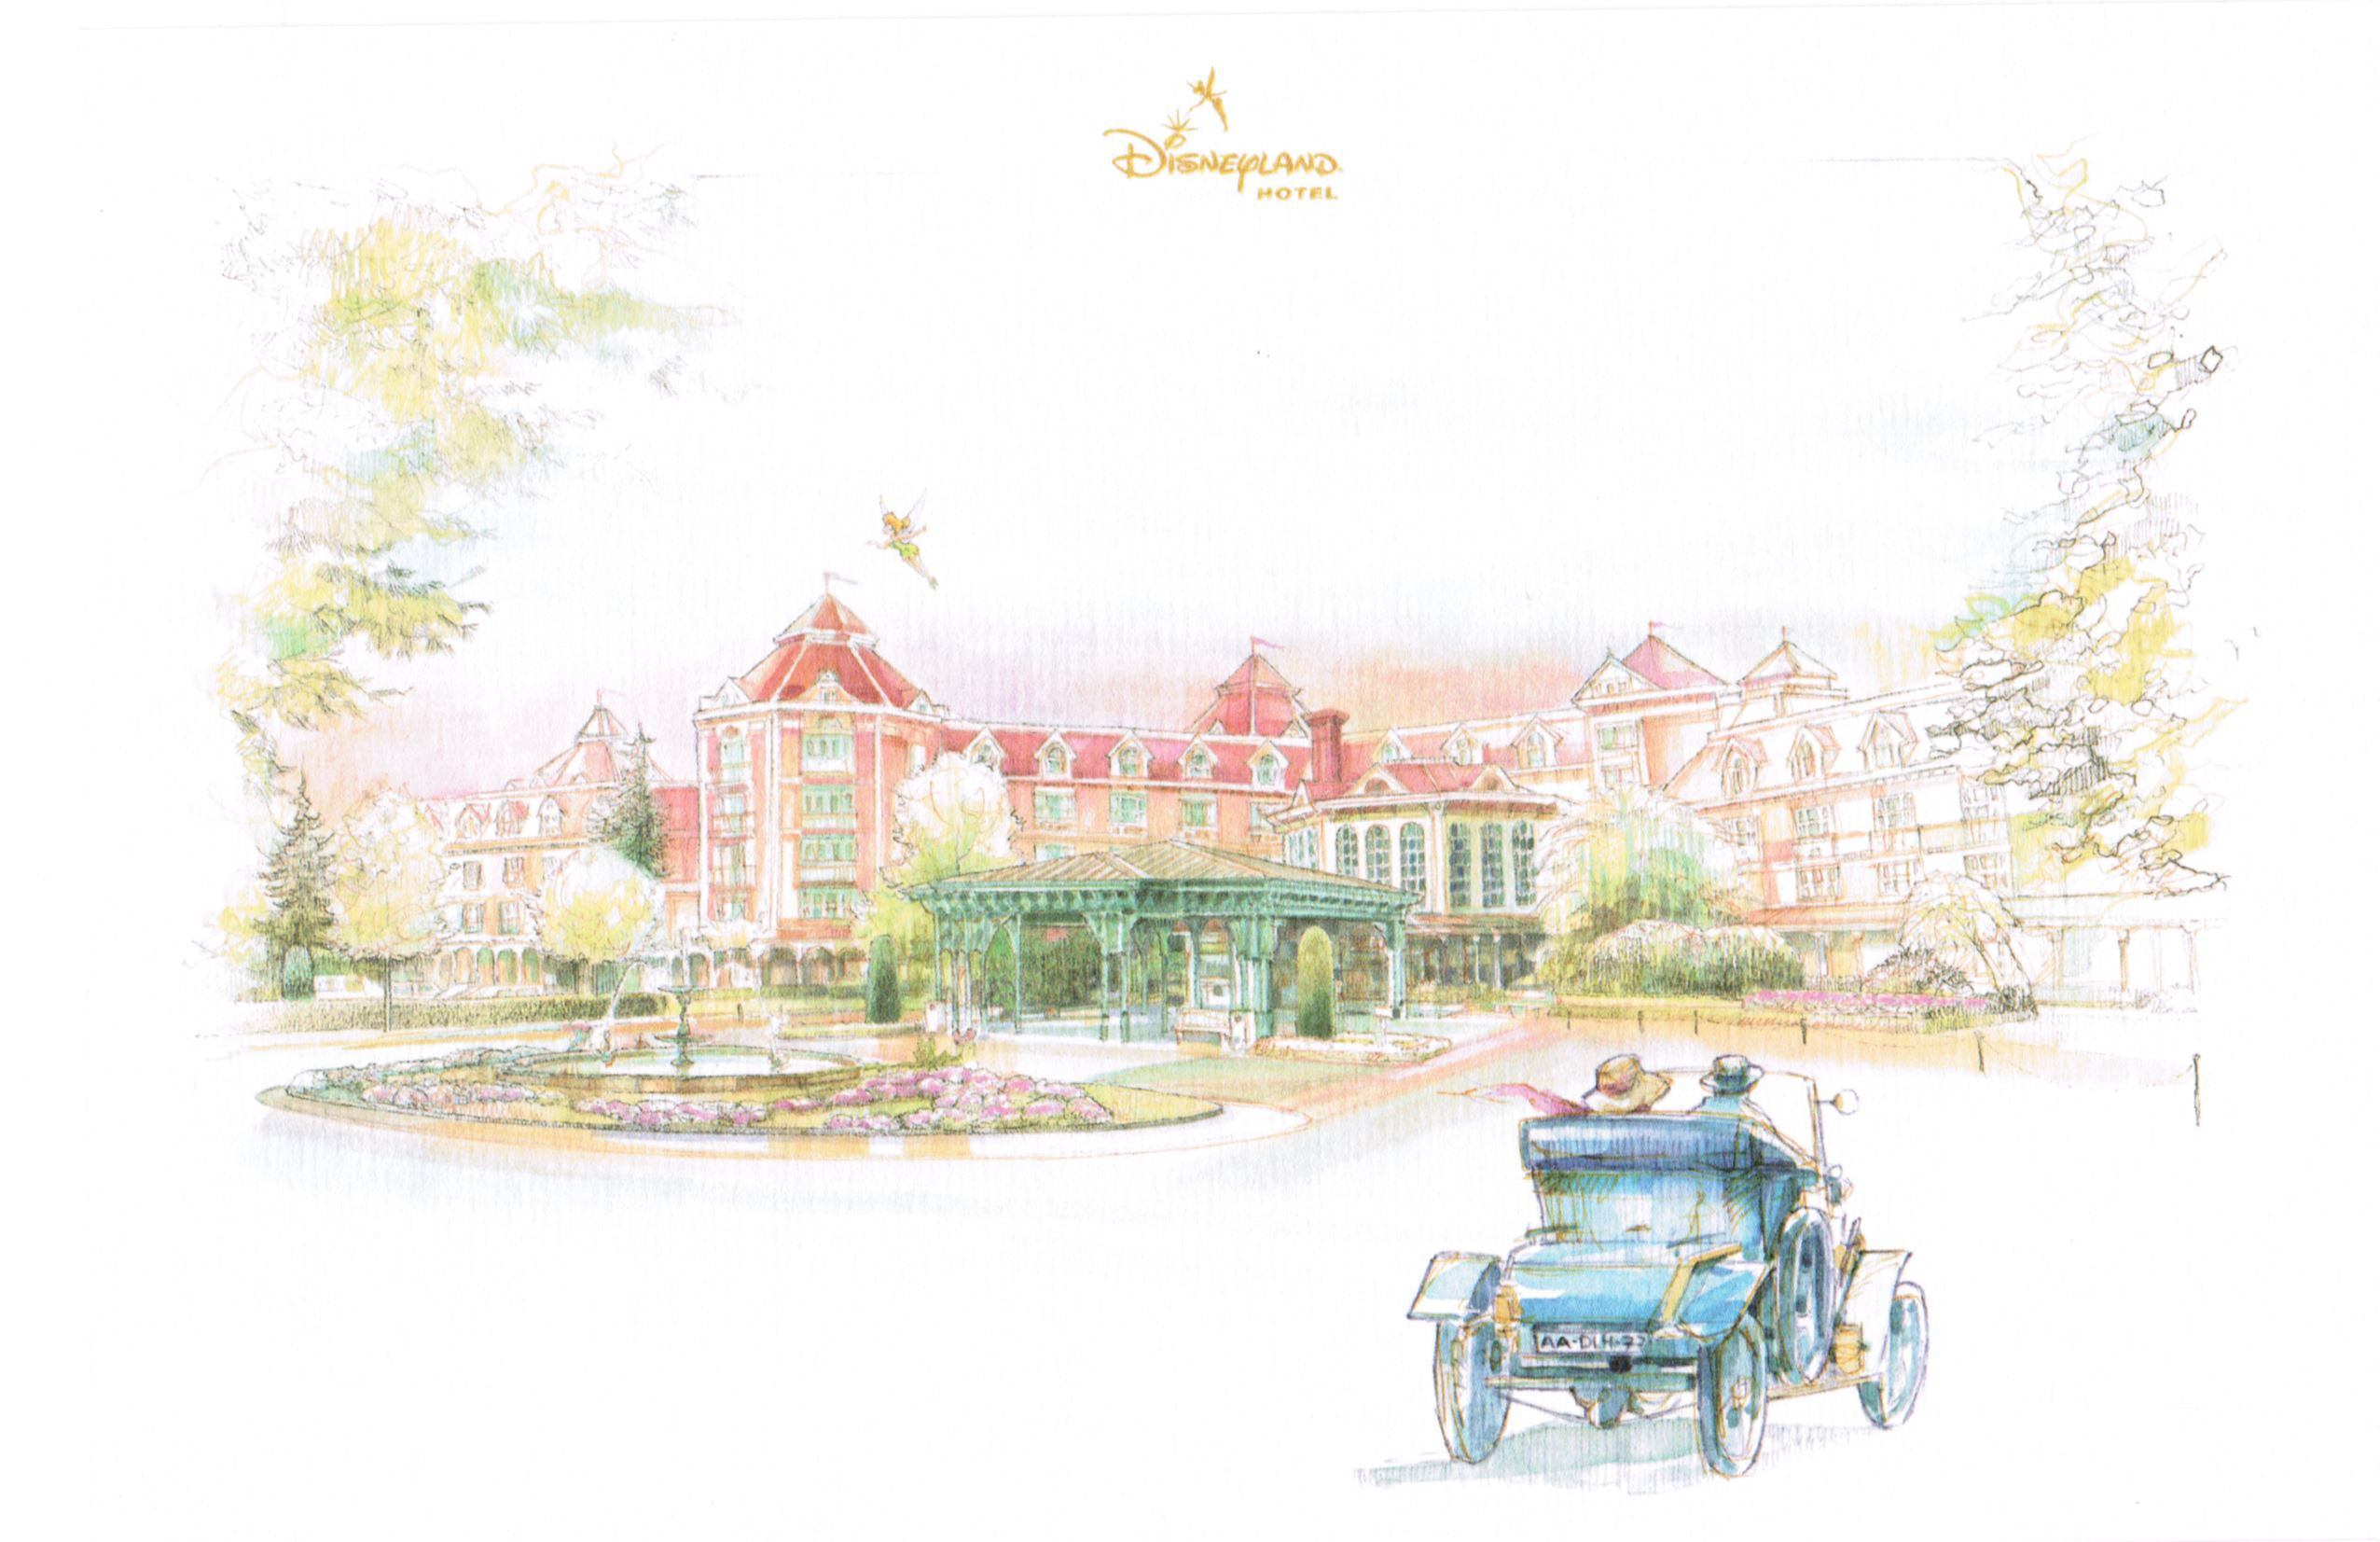 Disneyland Hotel in Paris - Thoughts - TouringPlans.com Blog